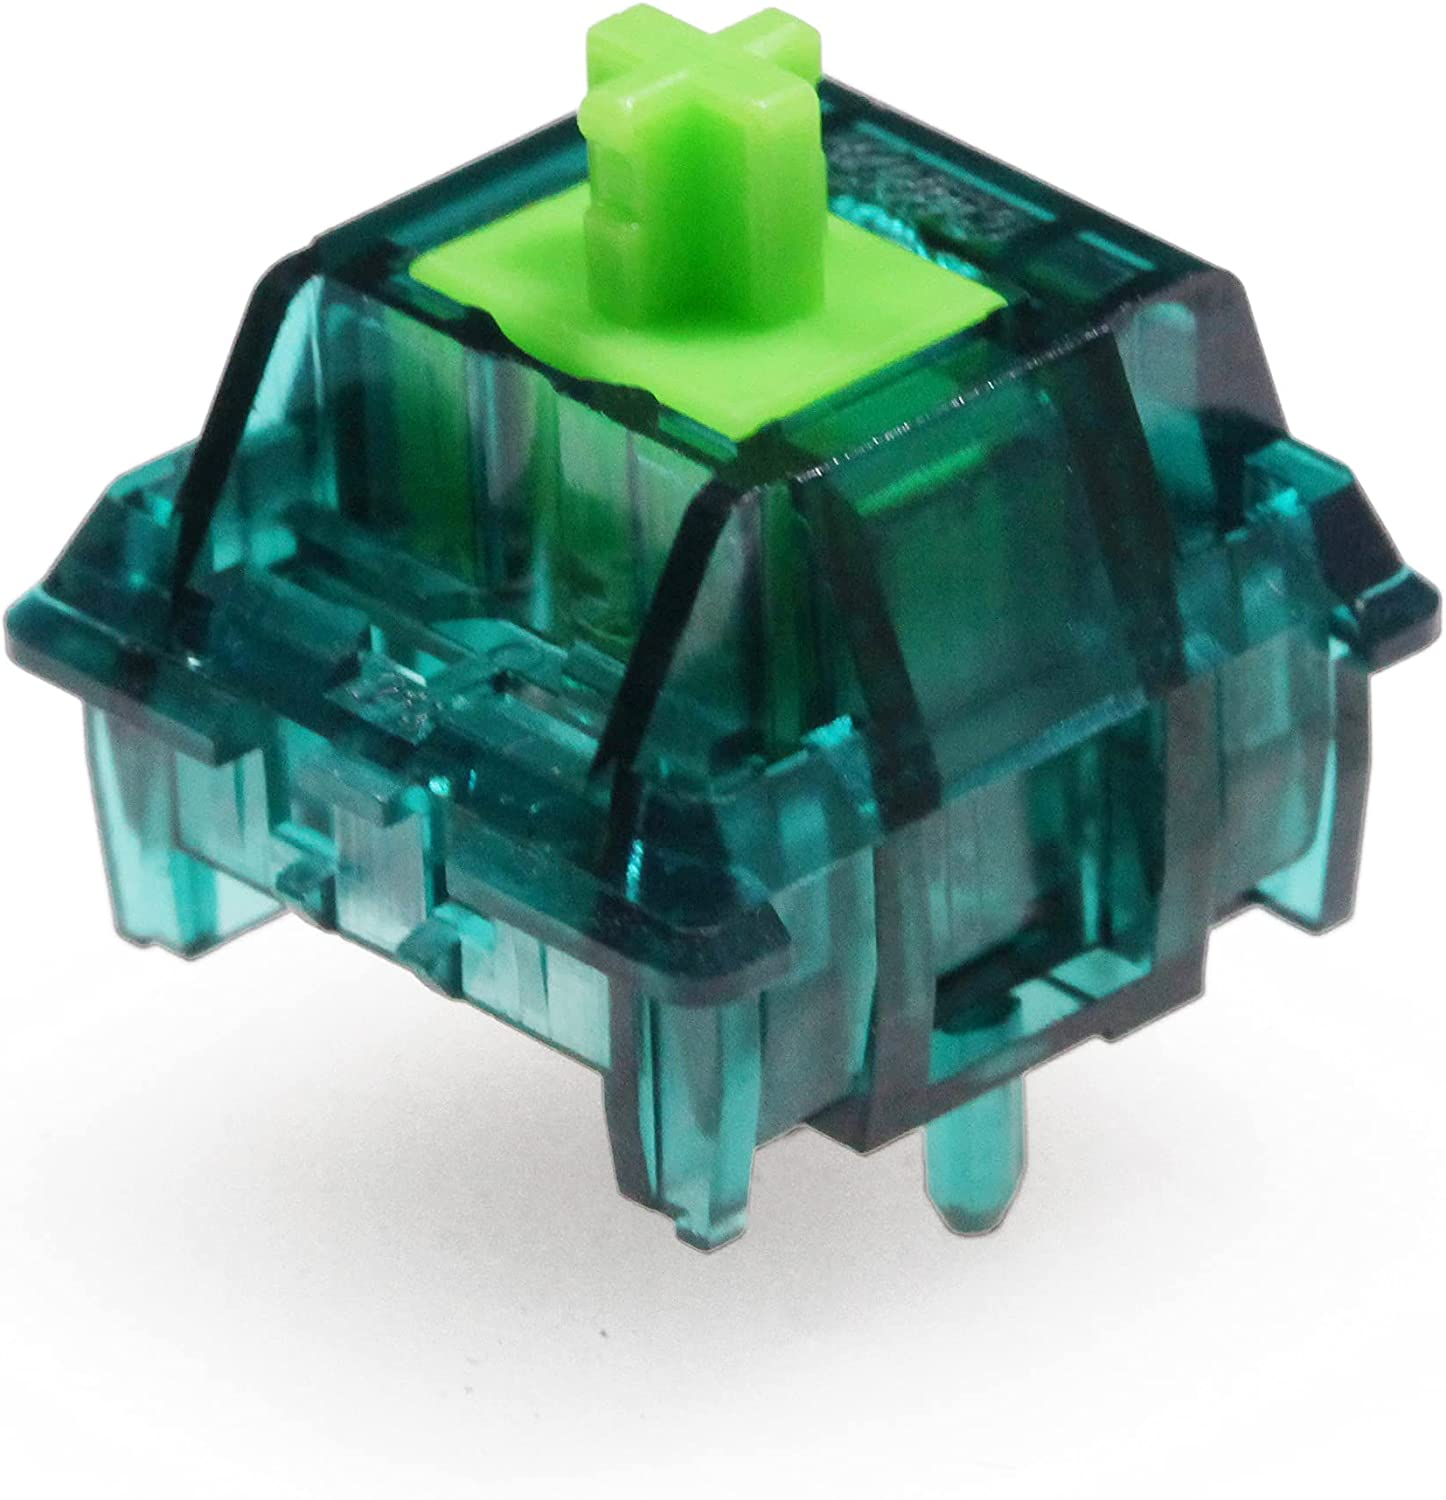 Candy Green Jade switch